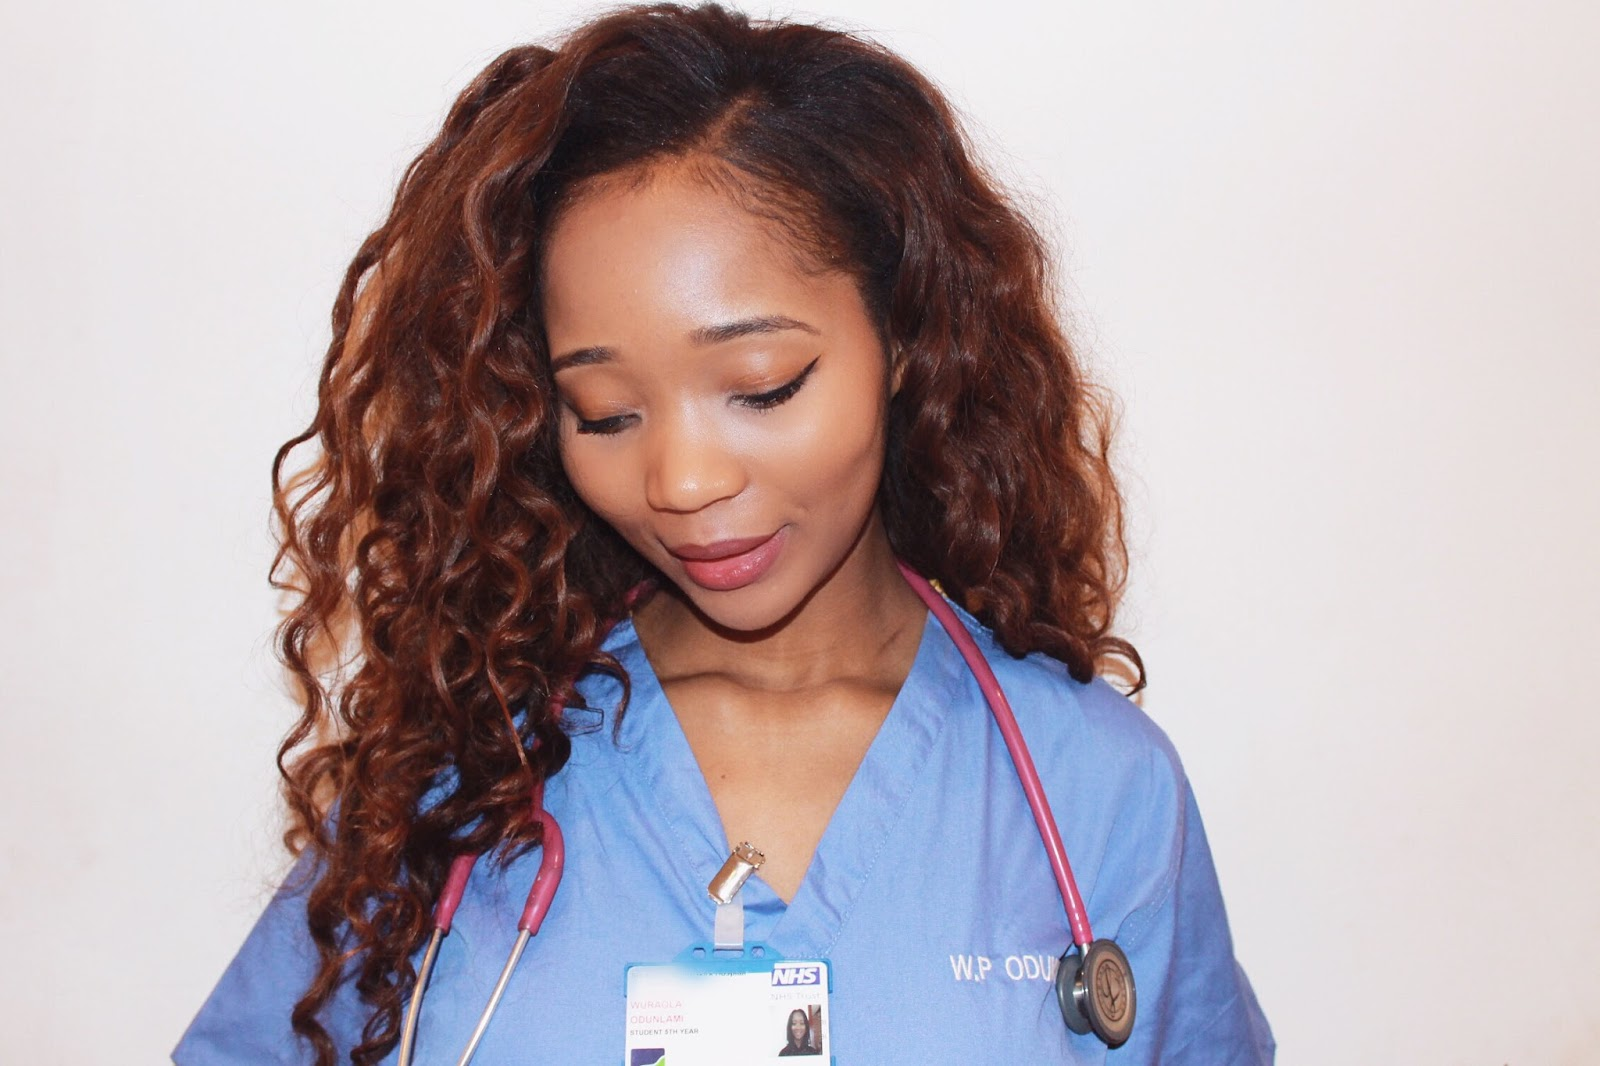 why i want to do medicine As a physician, i want to see a variety of patients -- men and women, young and old, rich and poor, and so on -- and i want to treat a mix of medical conditions.